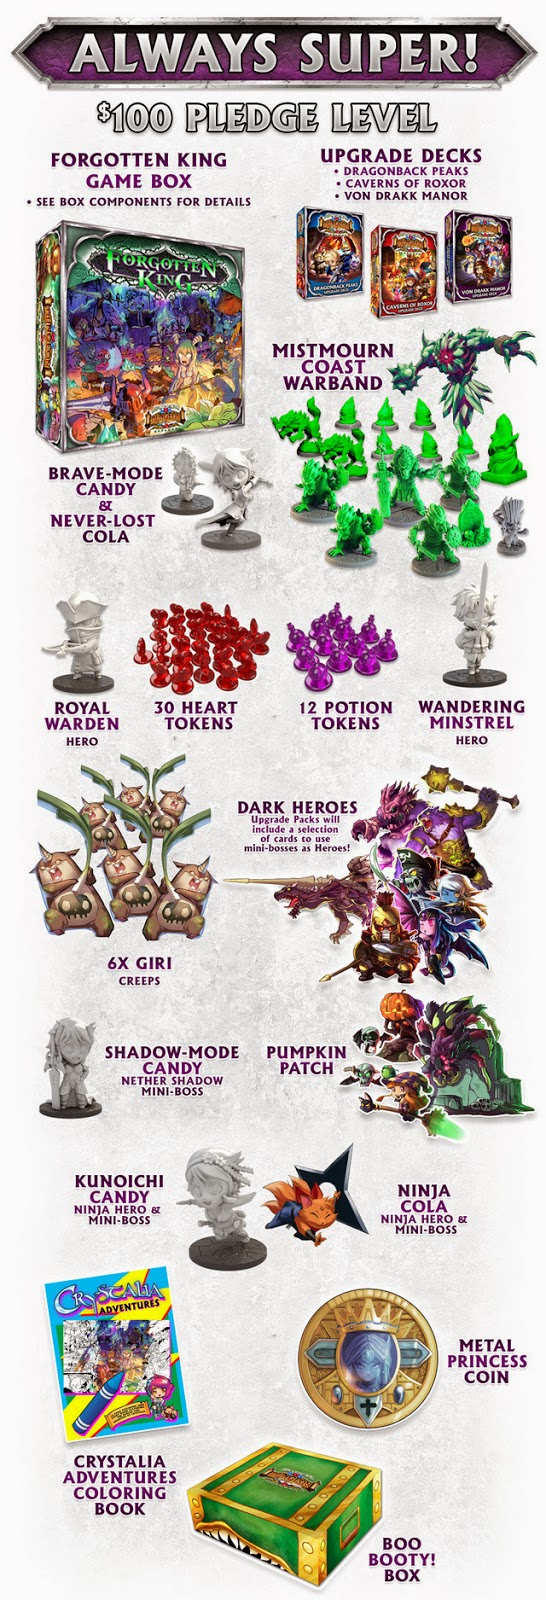 sde-super dungeon explorer forgotten king-kickstarter-2 (